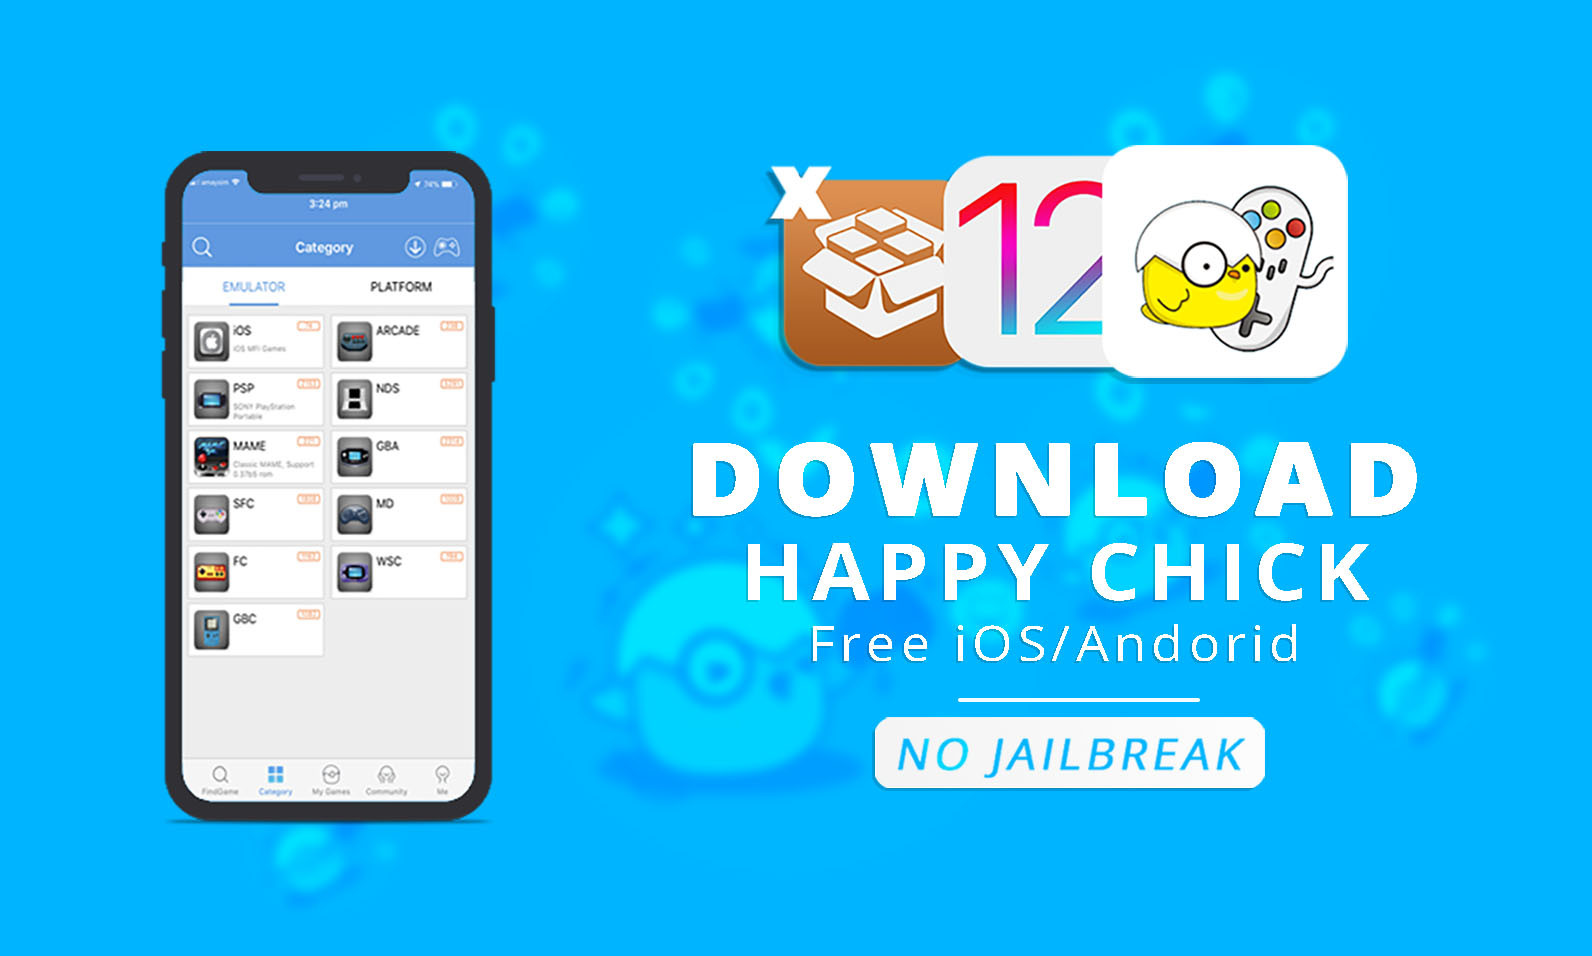 Get Happy Chick Emulator Free With Games on iOS 12 1 - wikigain